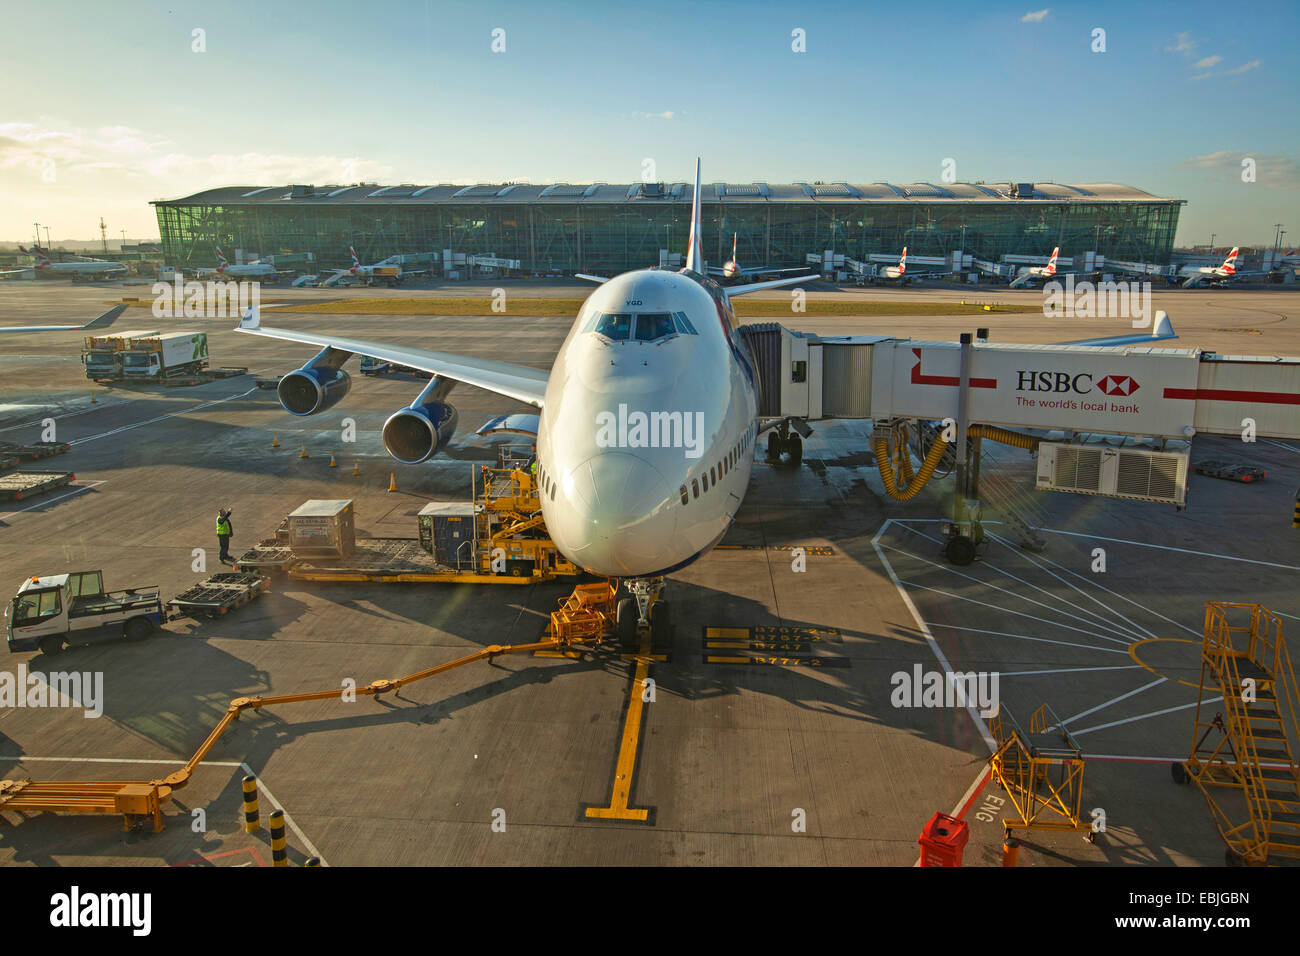 preparation for take-off of a Boeing 747 - Stock Image